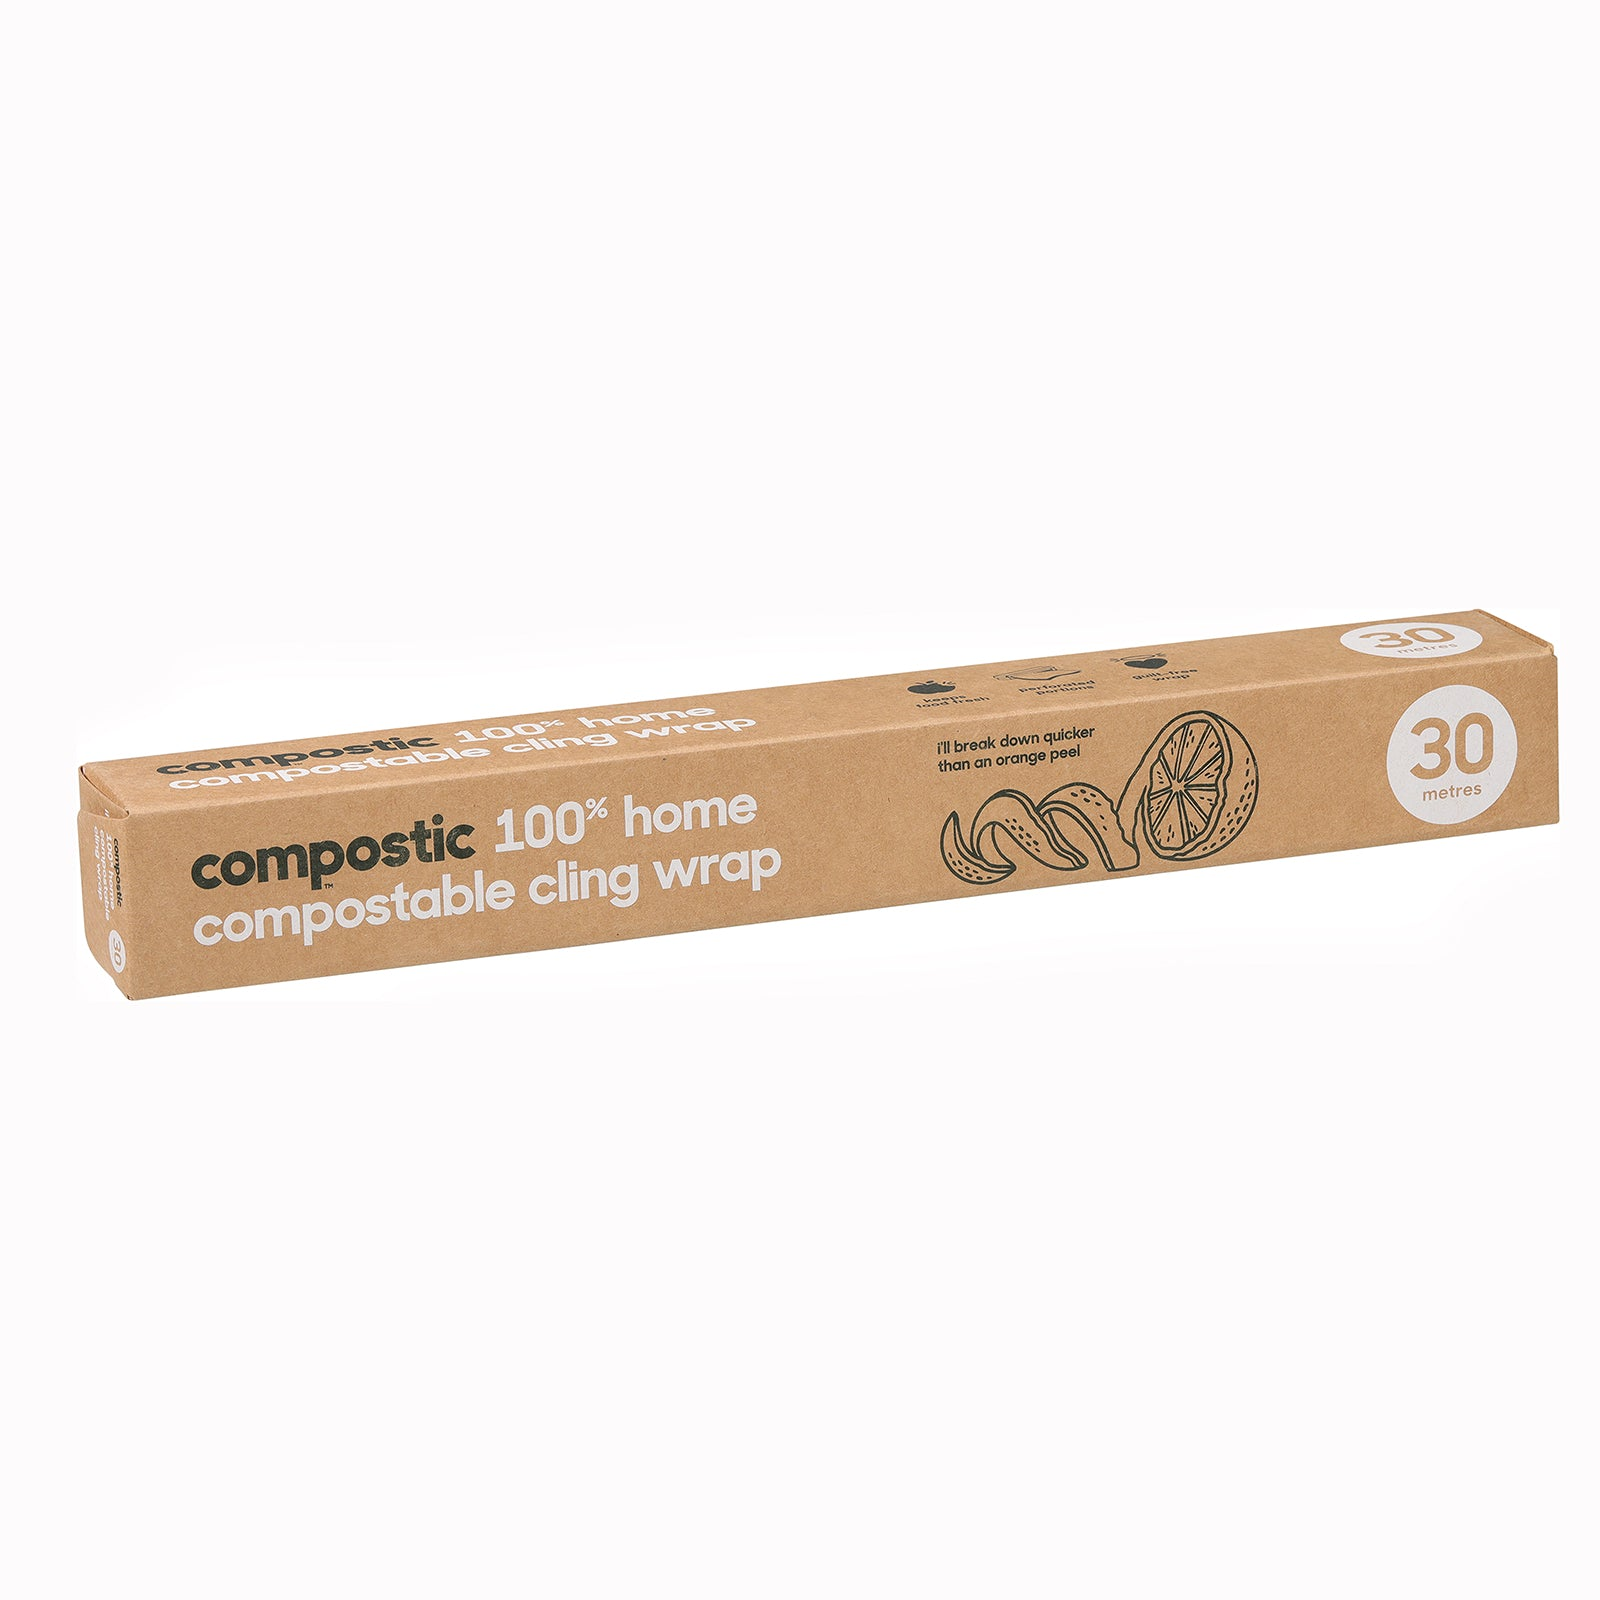 Compostic Home Compostable Cling Wrap - 30 metres